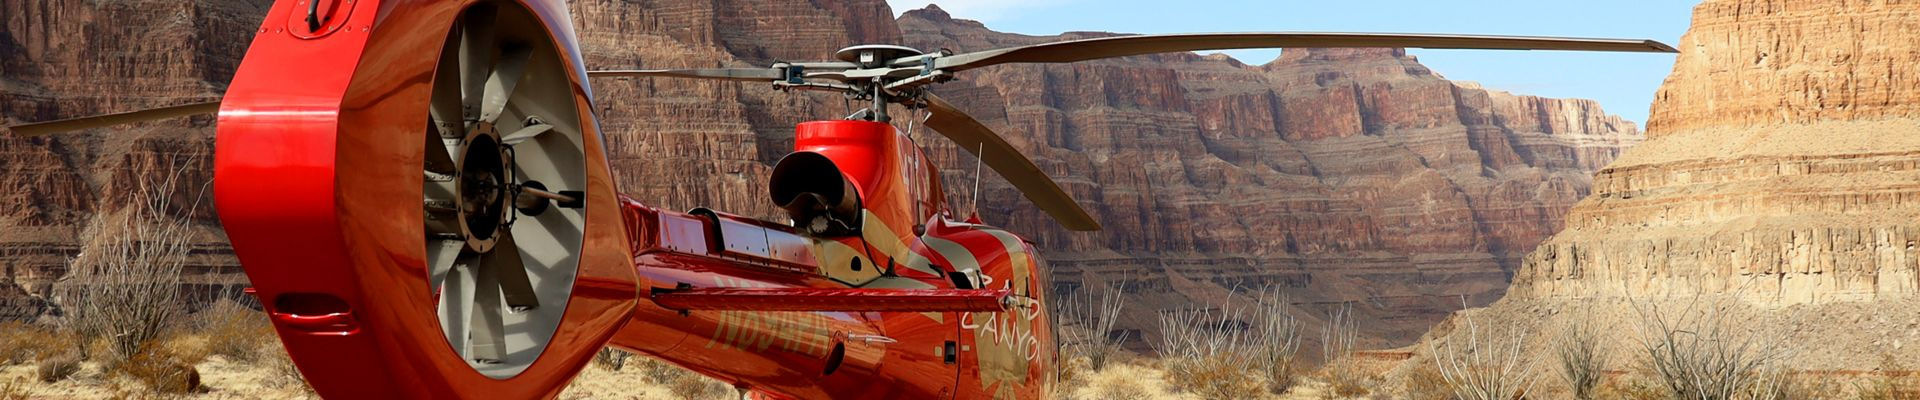 Red EC130 Helicopter landed at the bottom of the canyon on a sunny day at Grand Canyon West on the West Rim Motorcoach with Heli, Boat, and Skywalk Tour